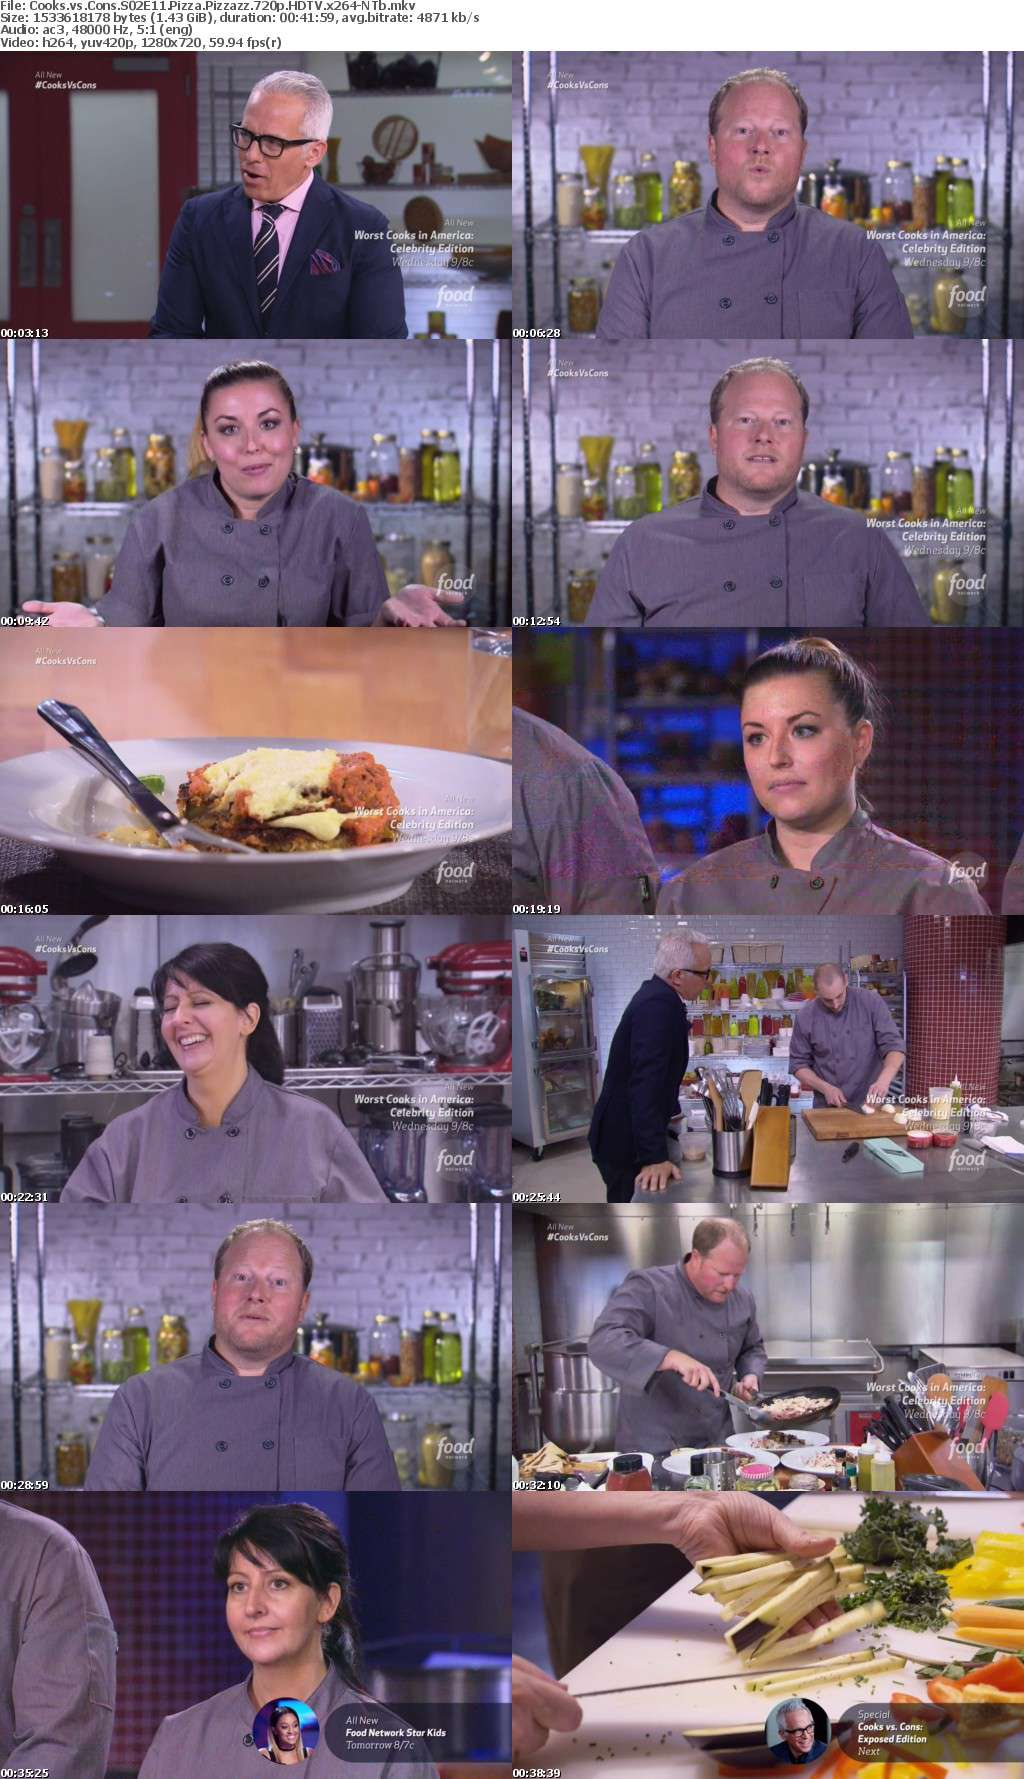 Cooks vs Cons S02E11 Pizza Pizzazz 720p HDTV x264-NTb